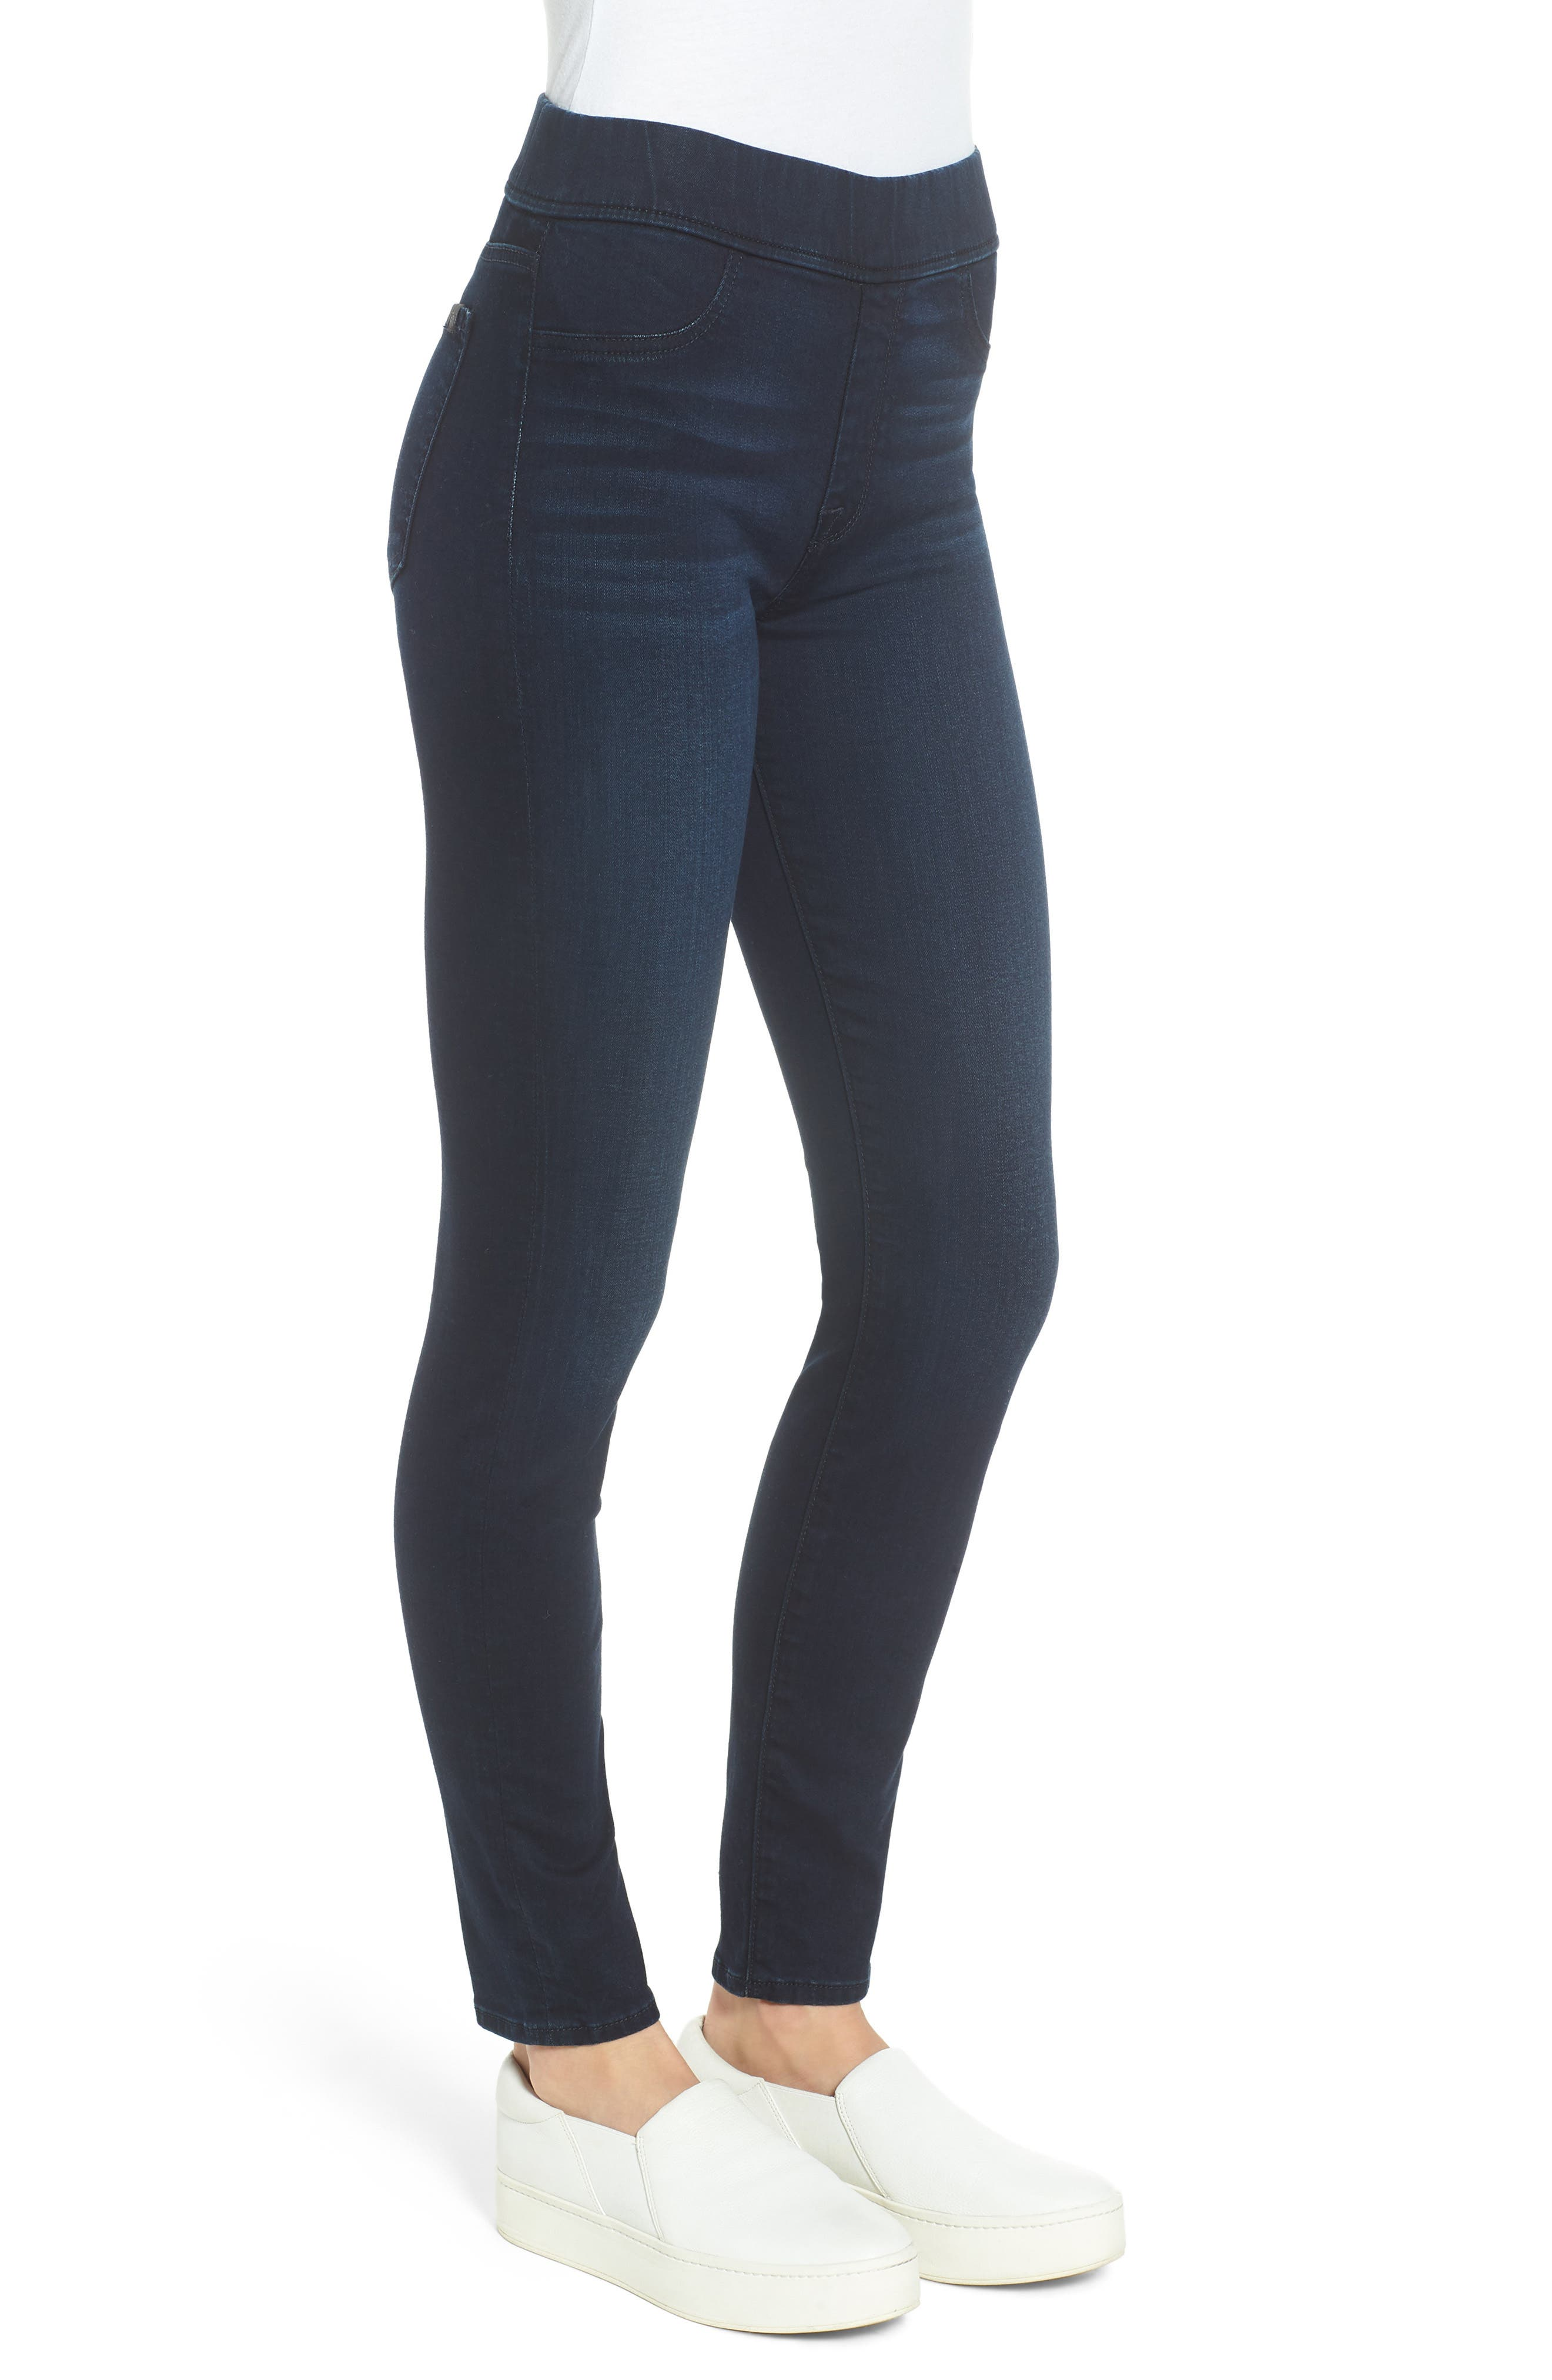 Comfort Skinny Denim Leggings,                             Alternate thumbnail 3, color,                             RICHE TOUCH BLUE/BLACK